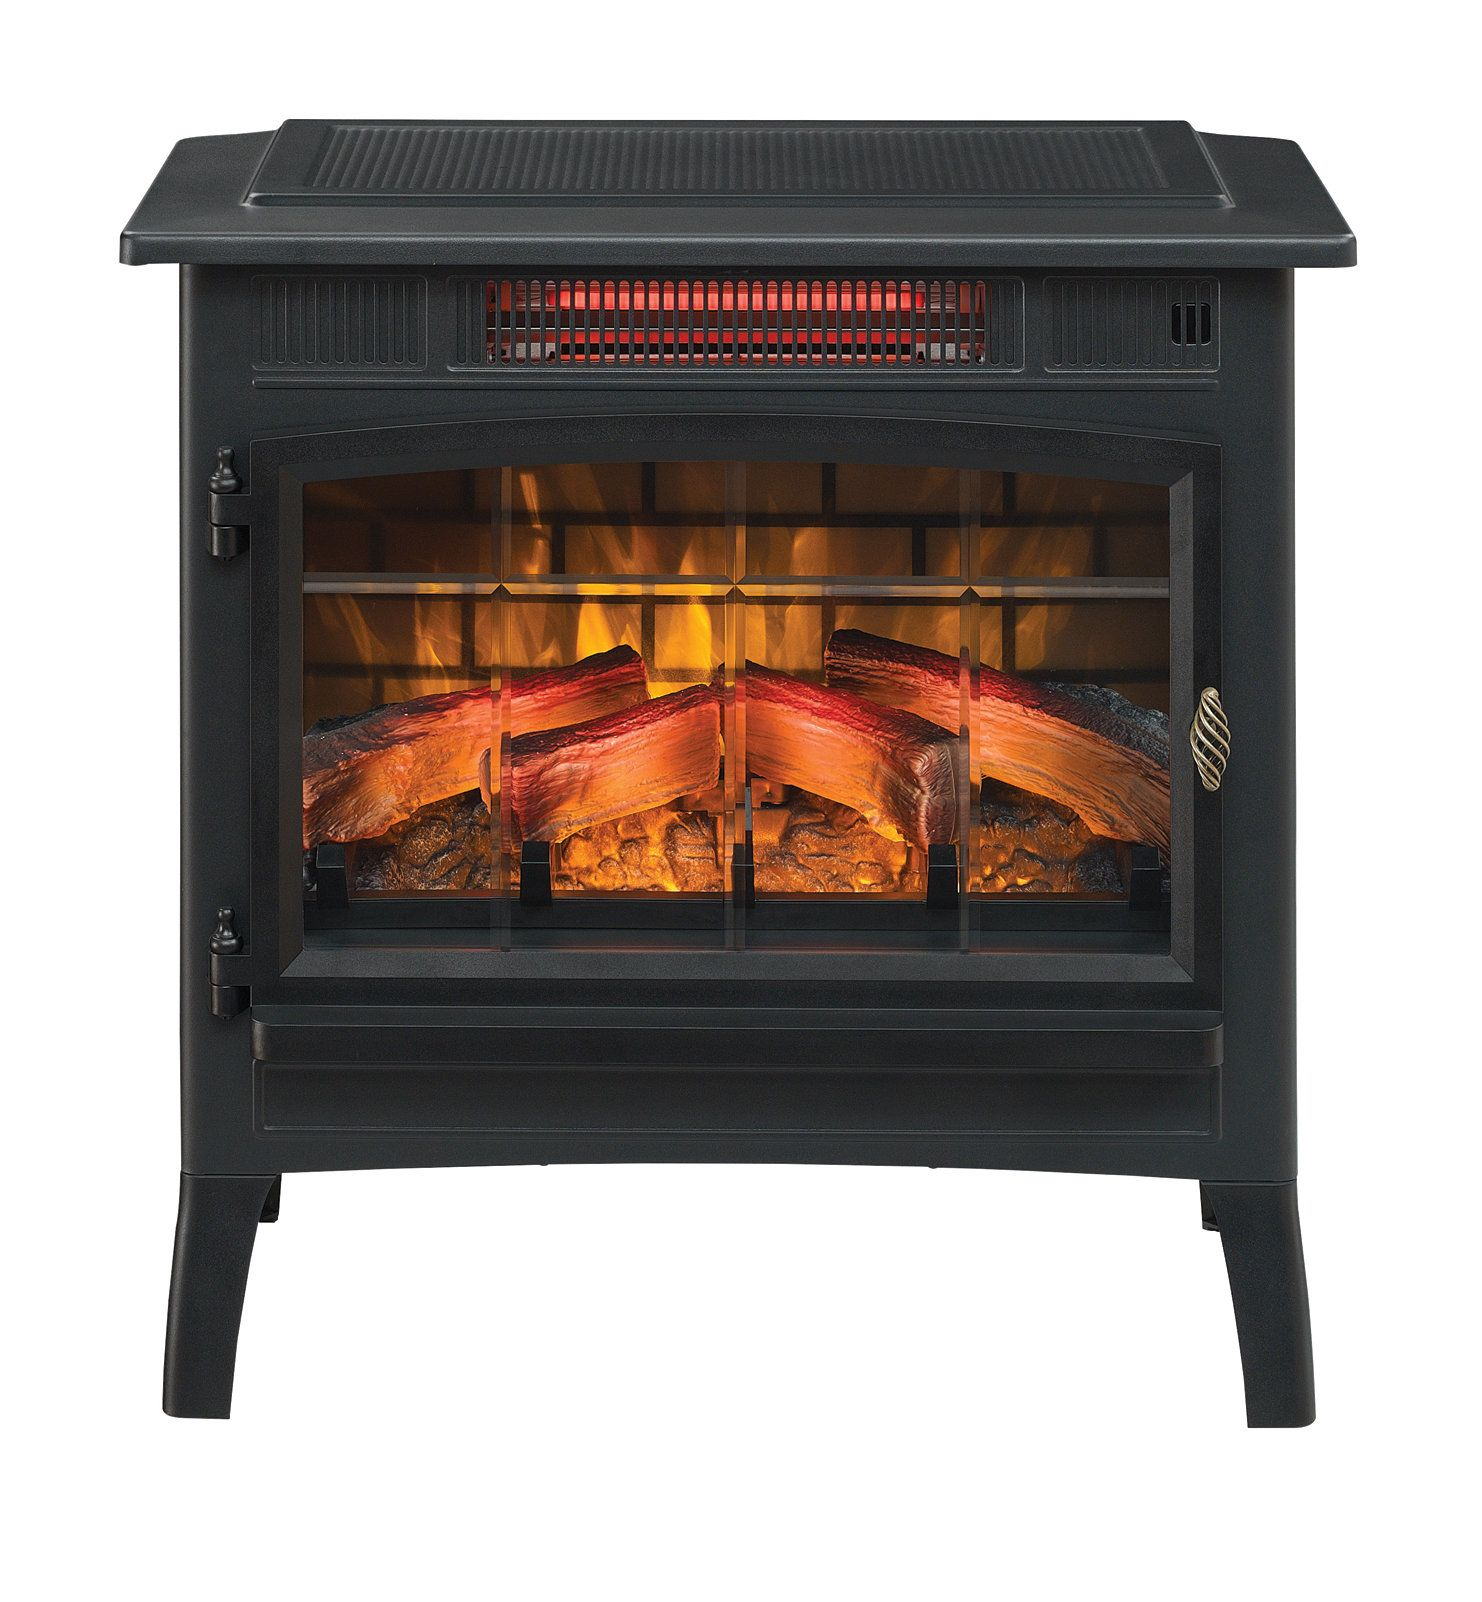 Wayfair Ca Online Home Store For Furniture Decor Outdoors More Stove Fireplace Best Electric Fireplace Stove Heater